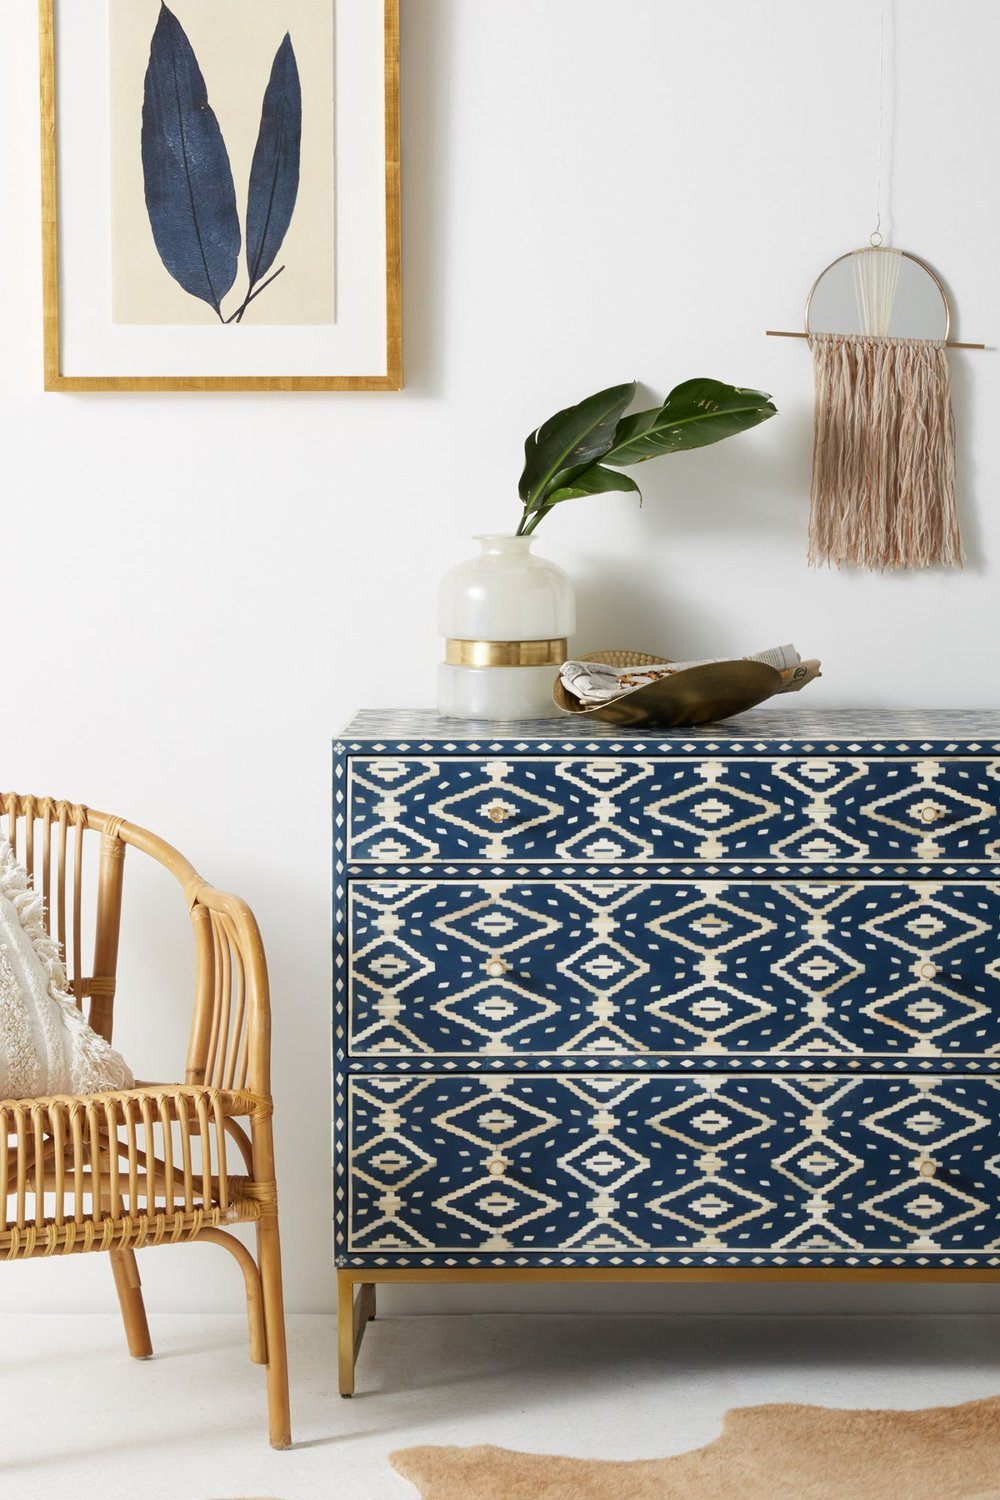 Bring a little bit of Morocco in your home. - This cool, coastal, moroccan style dresser is definitely understated and set perfectly with the white walls and warm wood chair and picture frame. Navy, white and warm wood pairs so perfectly together!Photo and dresser by: Anthropologie